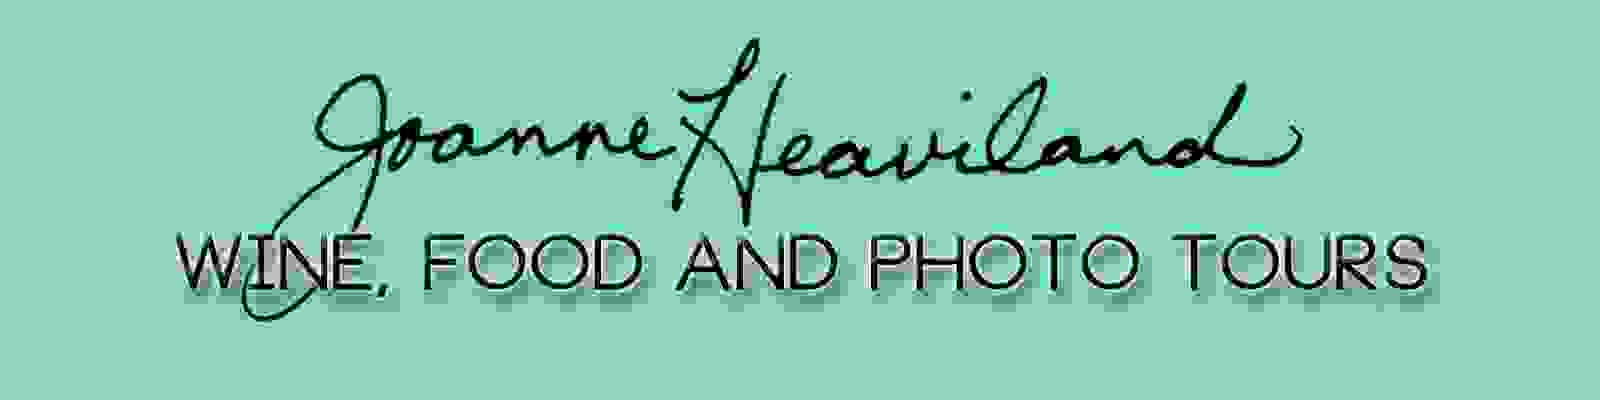 Joanne Heaviland Photography   Wine, Food, Photo Tours